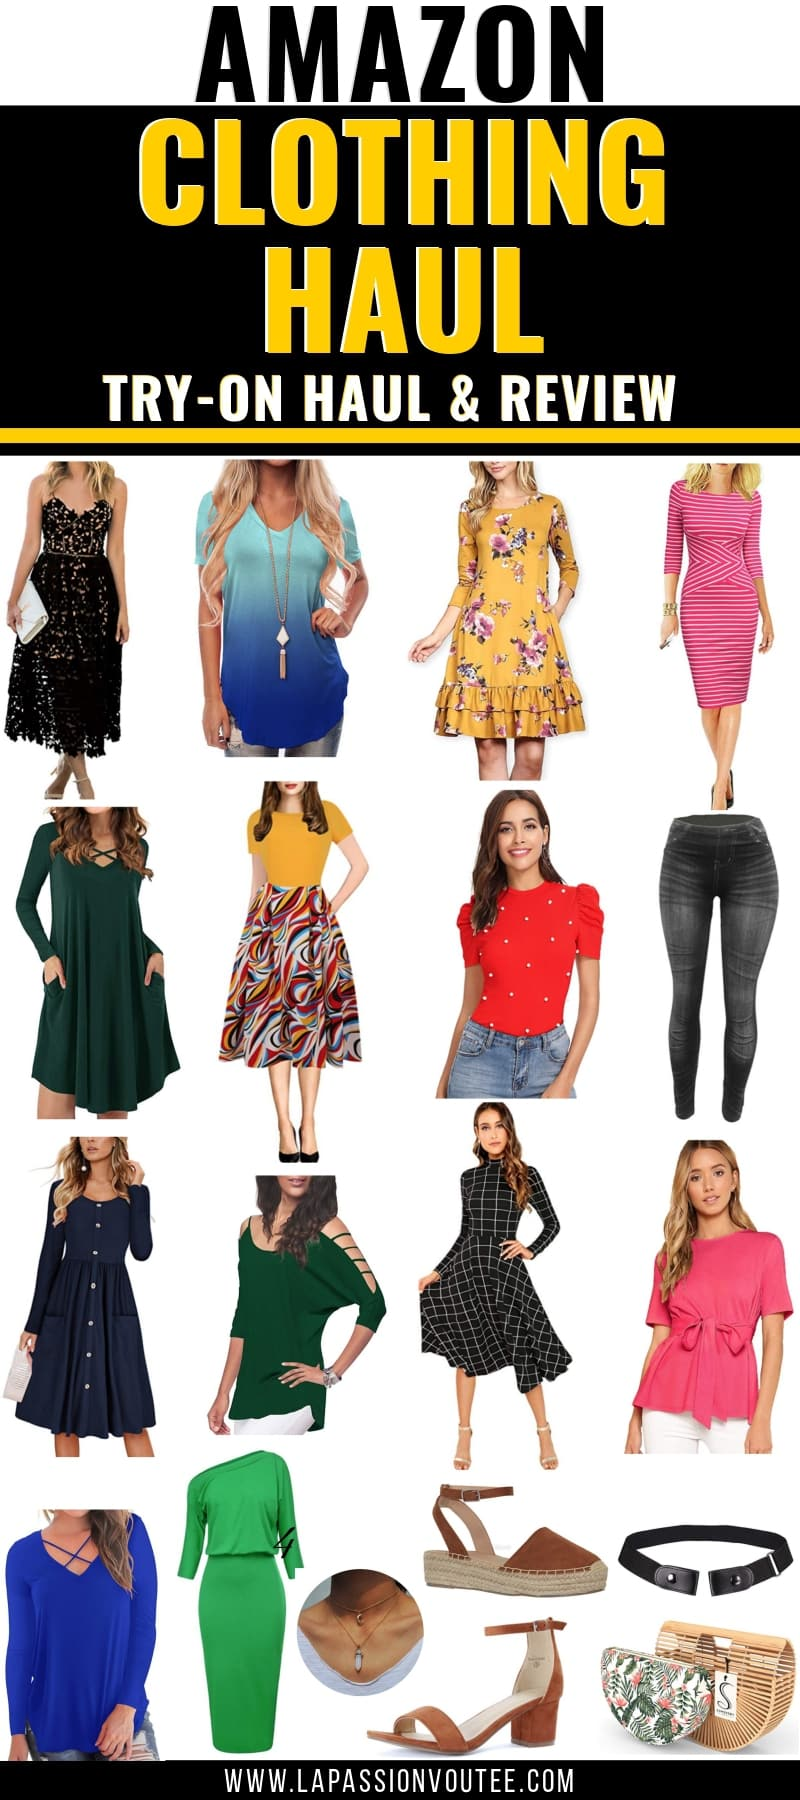 Is it worth your time and money shopping for clothes on Amazon? Discover the best items to buy from Amazon in this epic fashion haul post plus tips on how to save money shopping on Amazon.